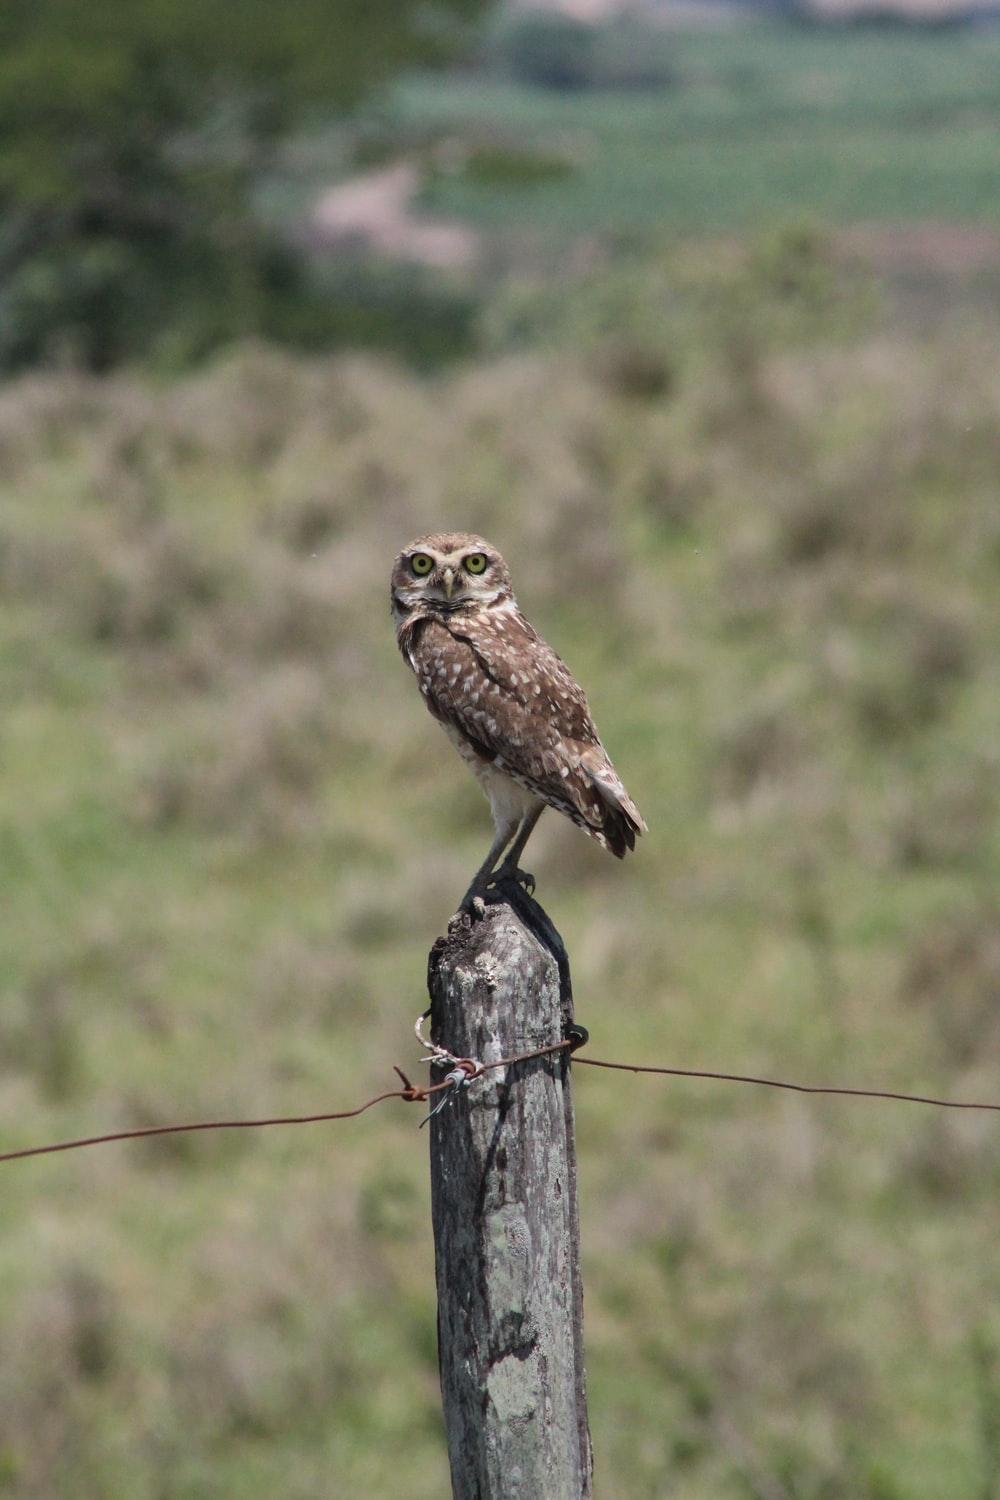 brown owl perched on brown wooden post during daytime